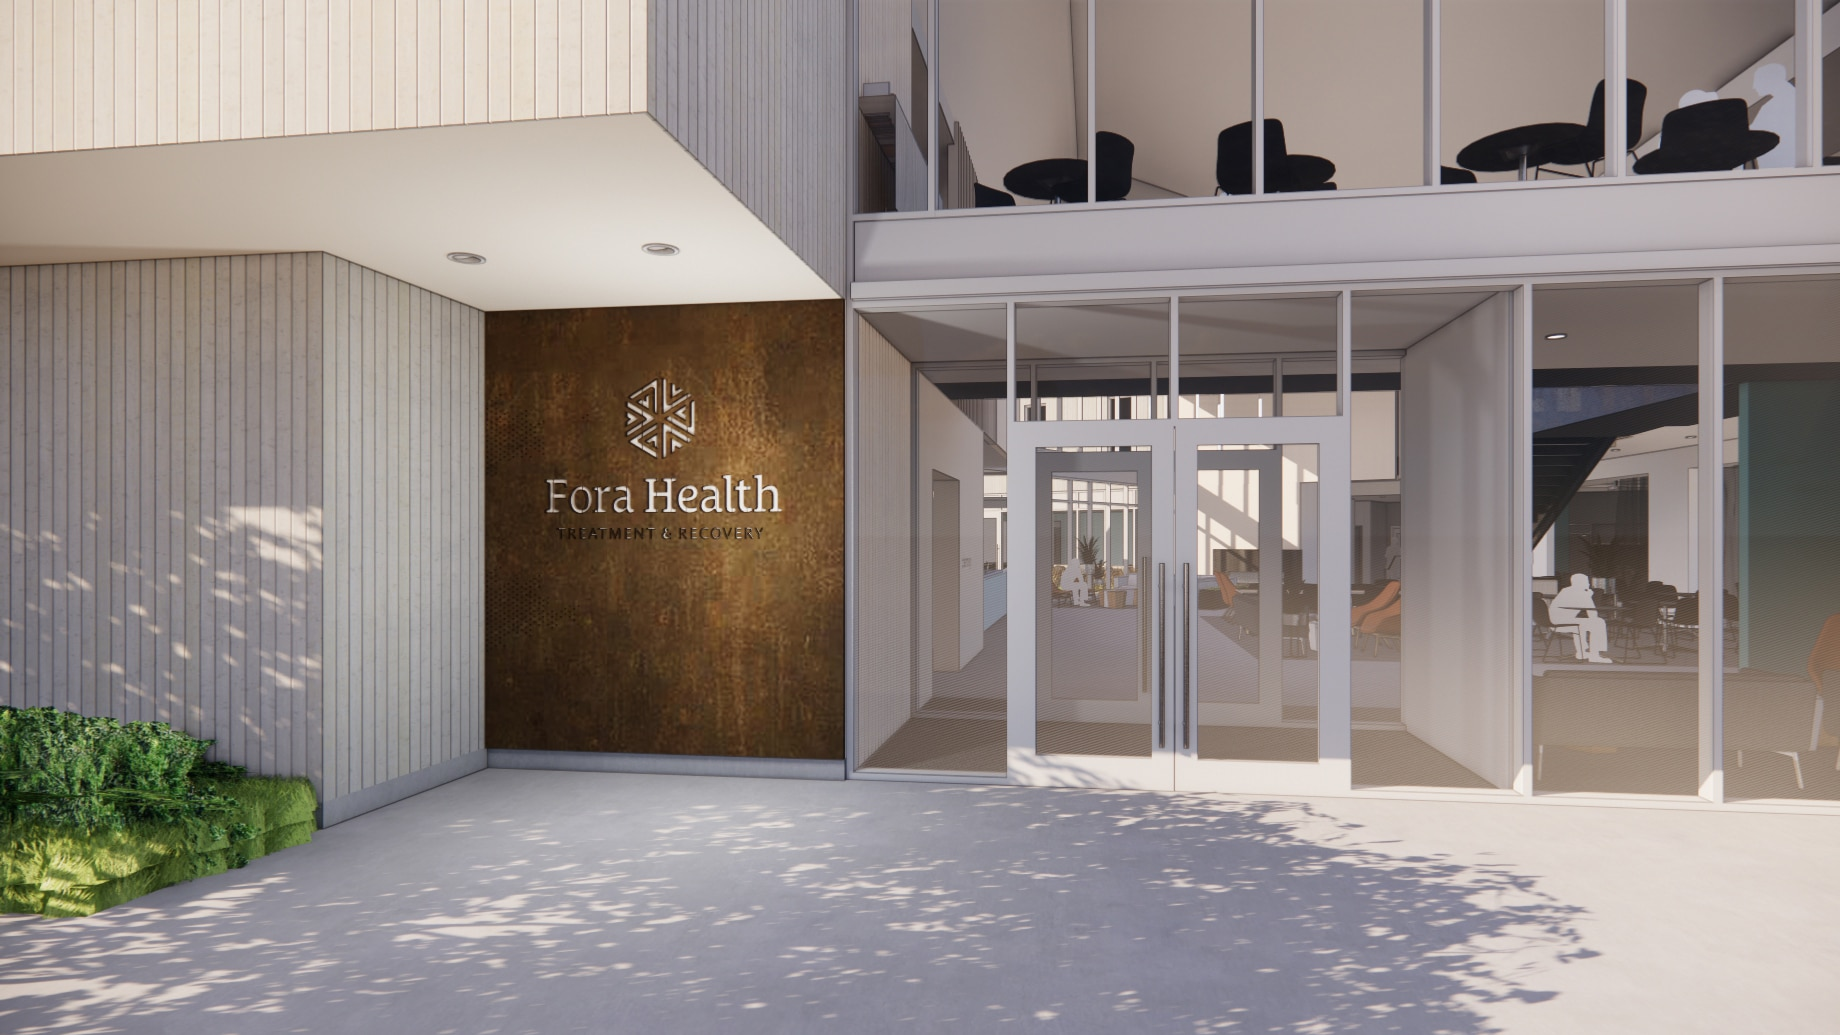 View of entrance to Fora Health. Glass doors and rusted metal wall with logo